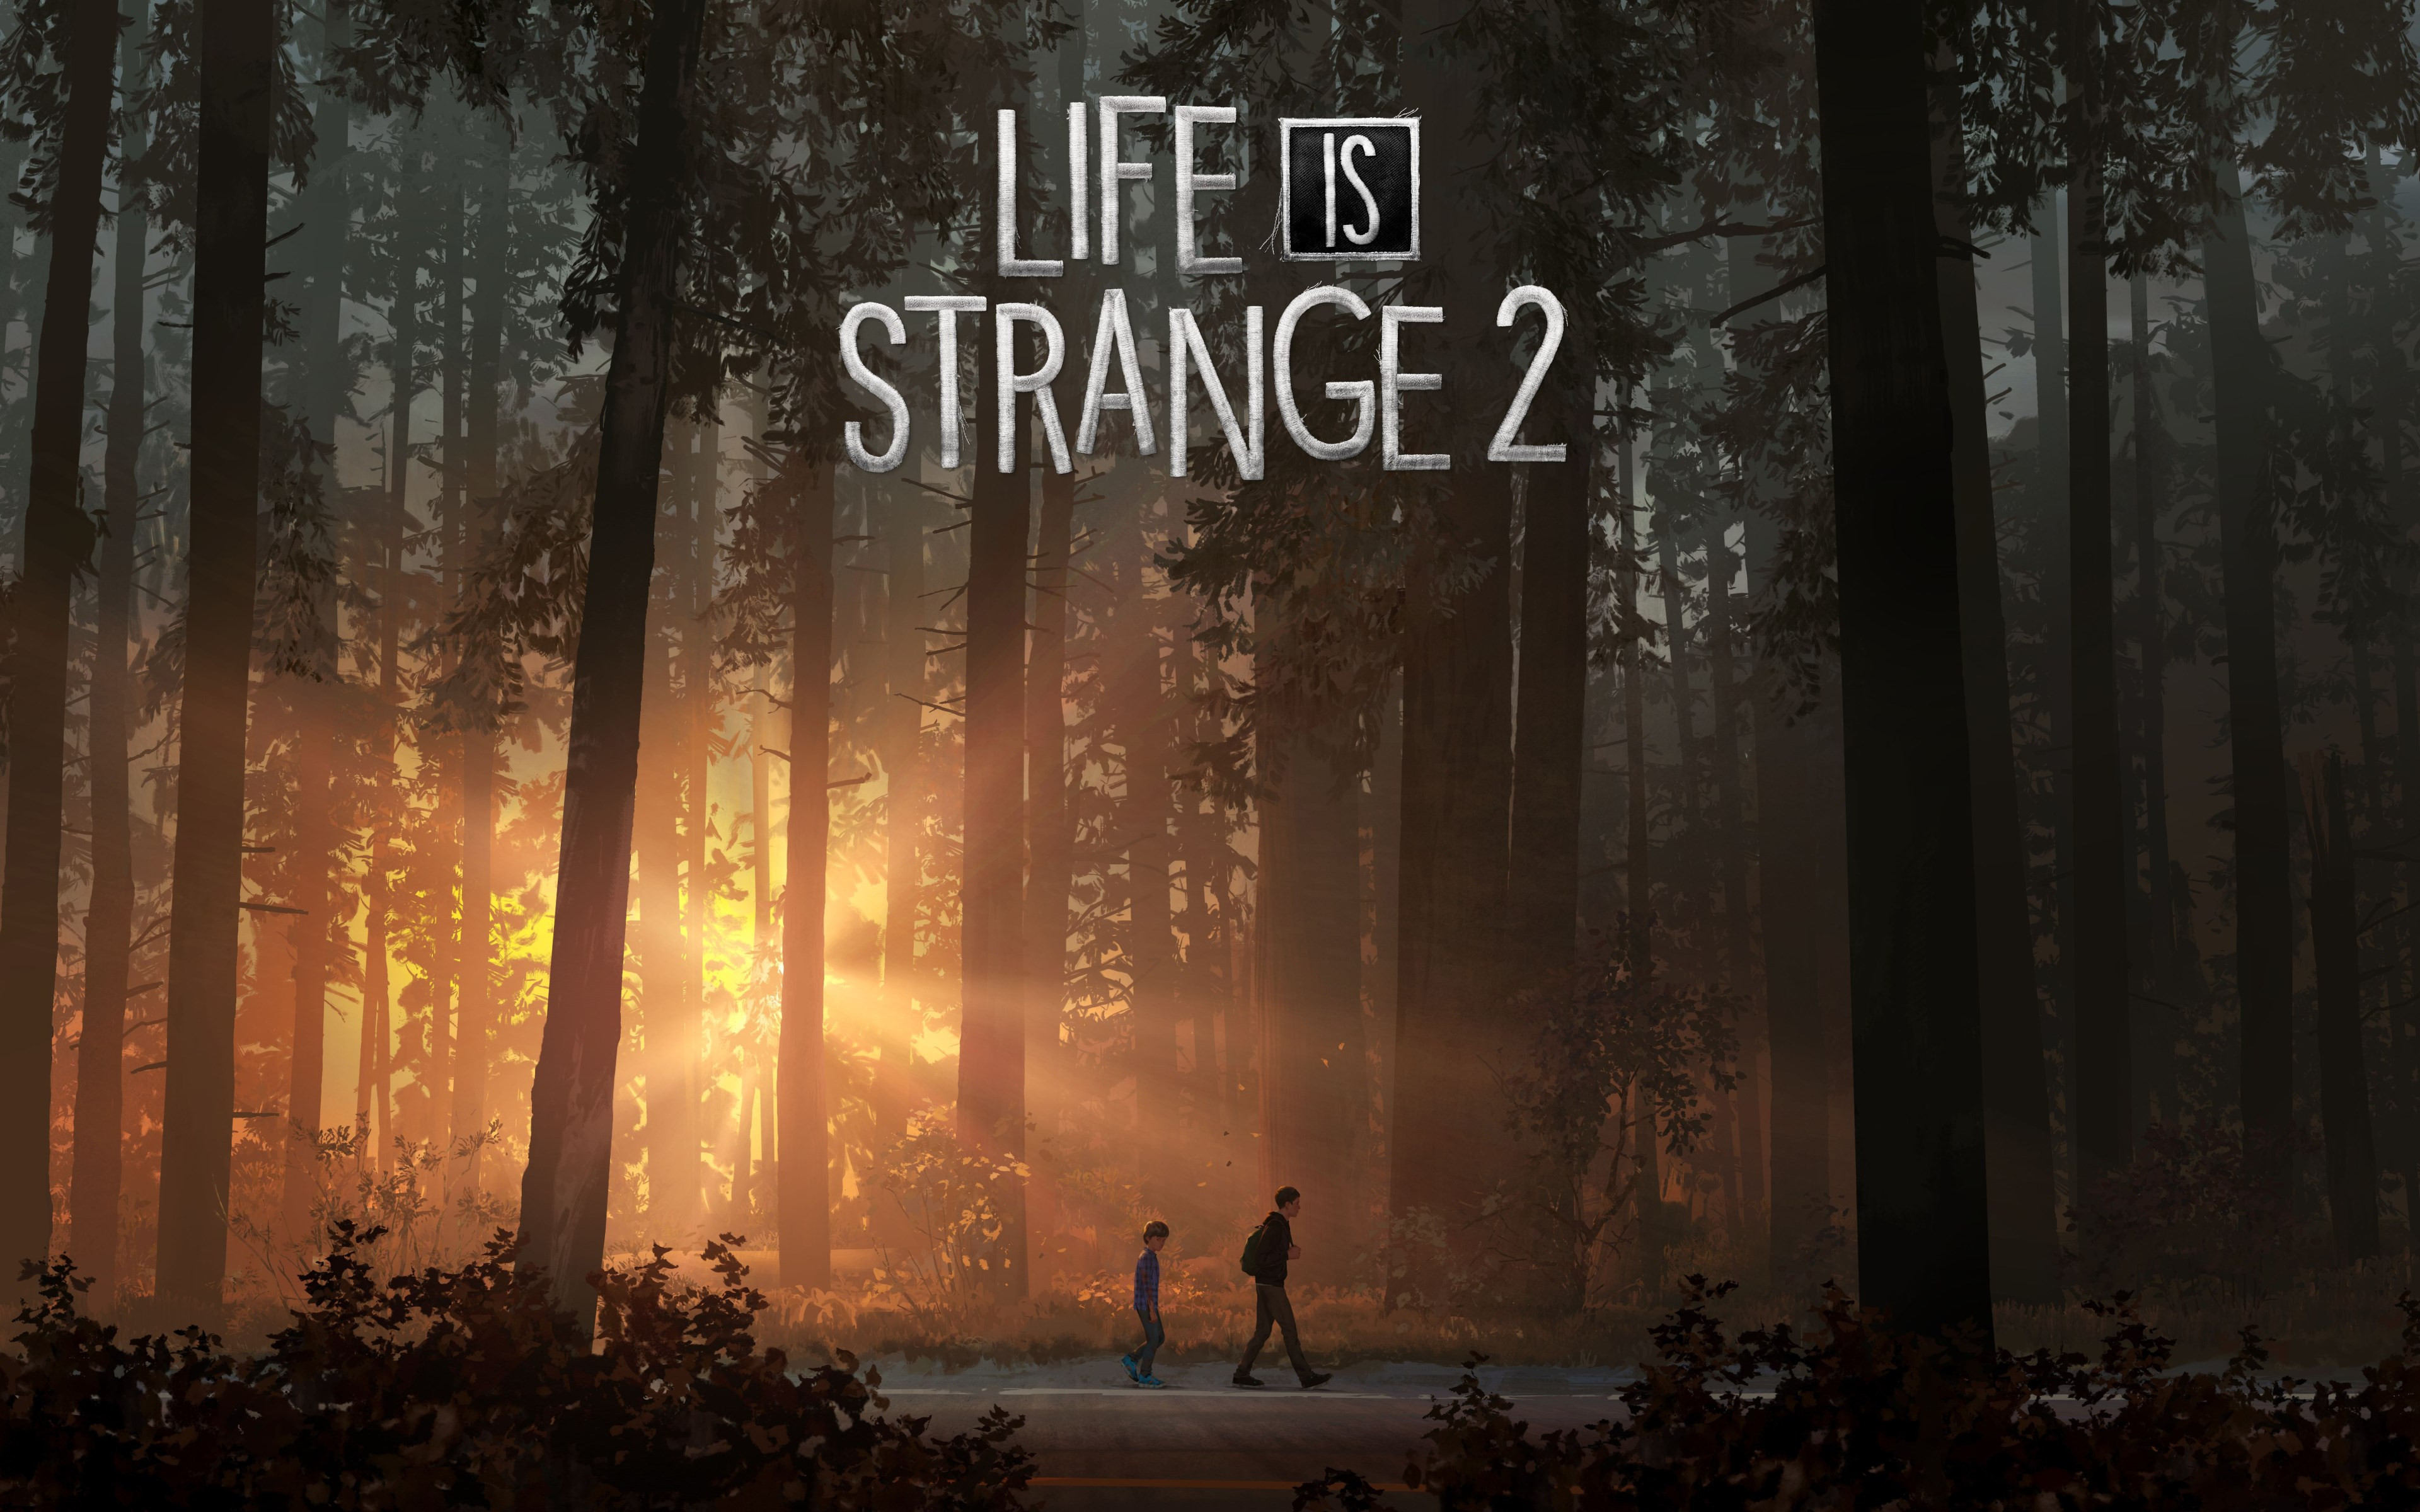 Life Is Strange 2 wallpaper 3840x2400